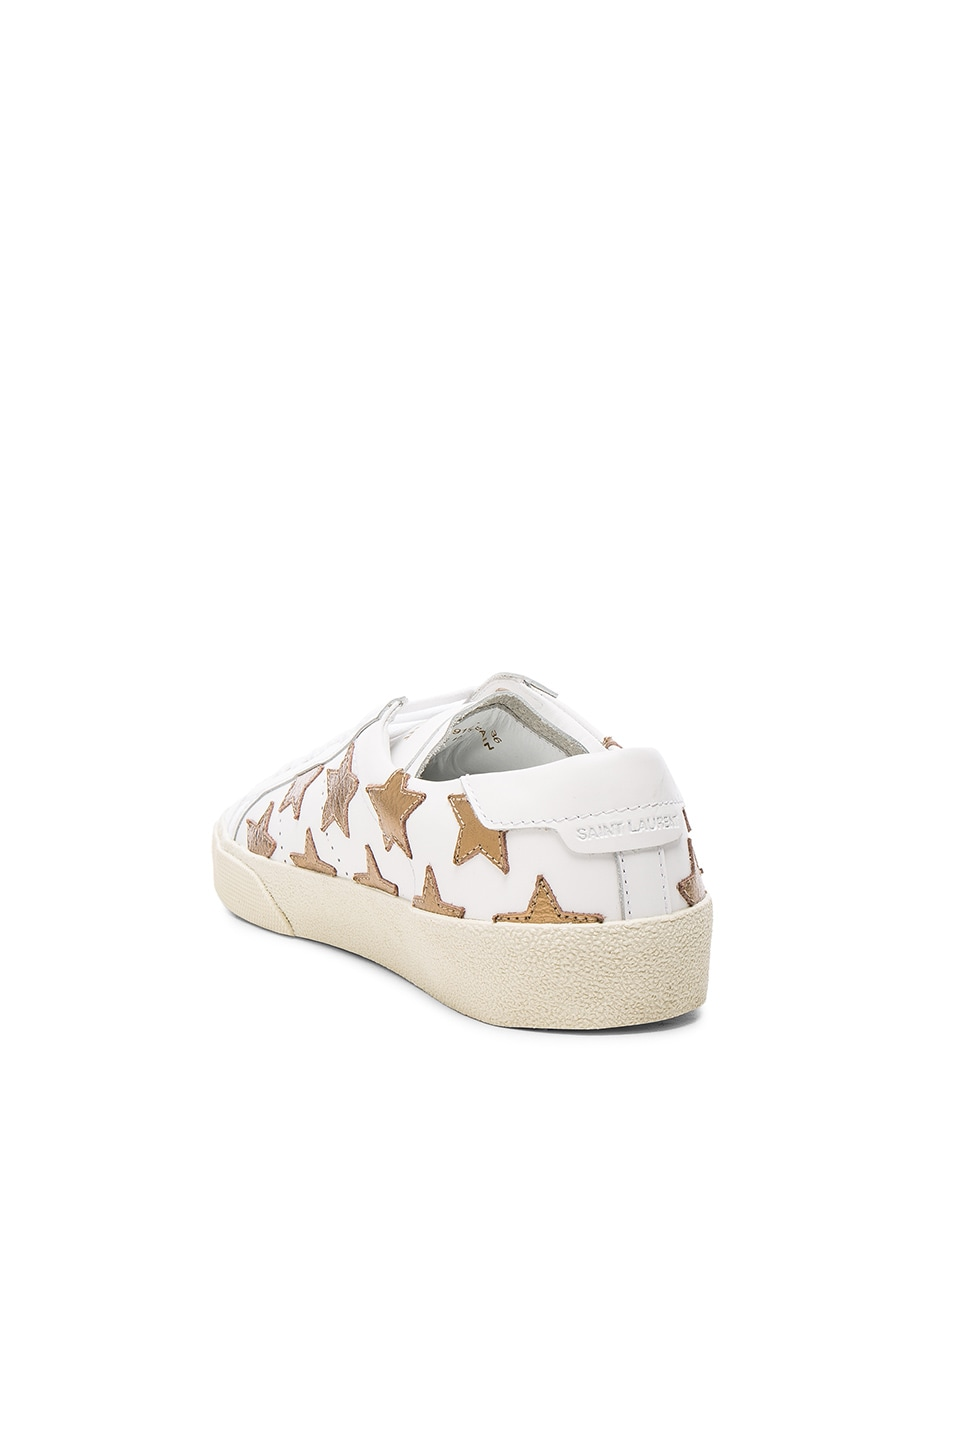 Image 3 of Saint Laurent Court Classic Star Leather Sneakers in Gold & Off White